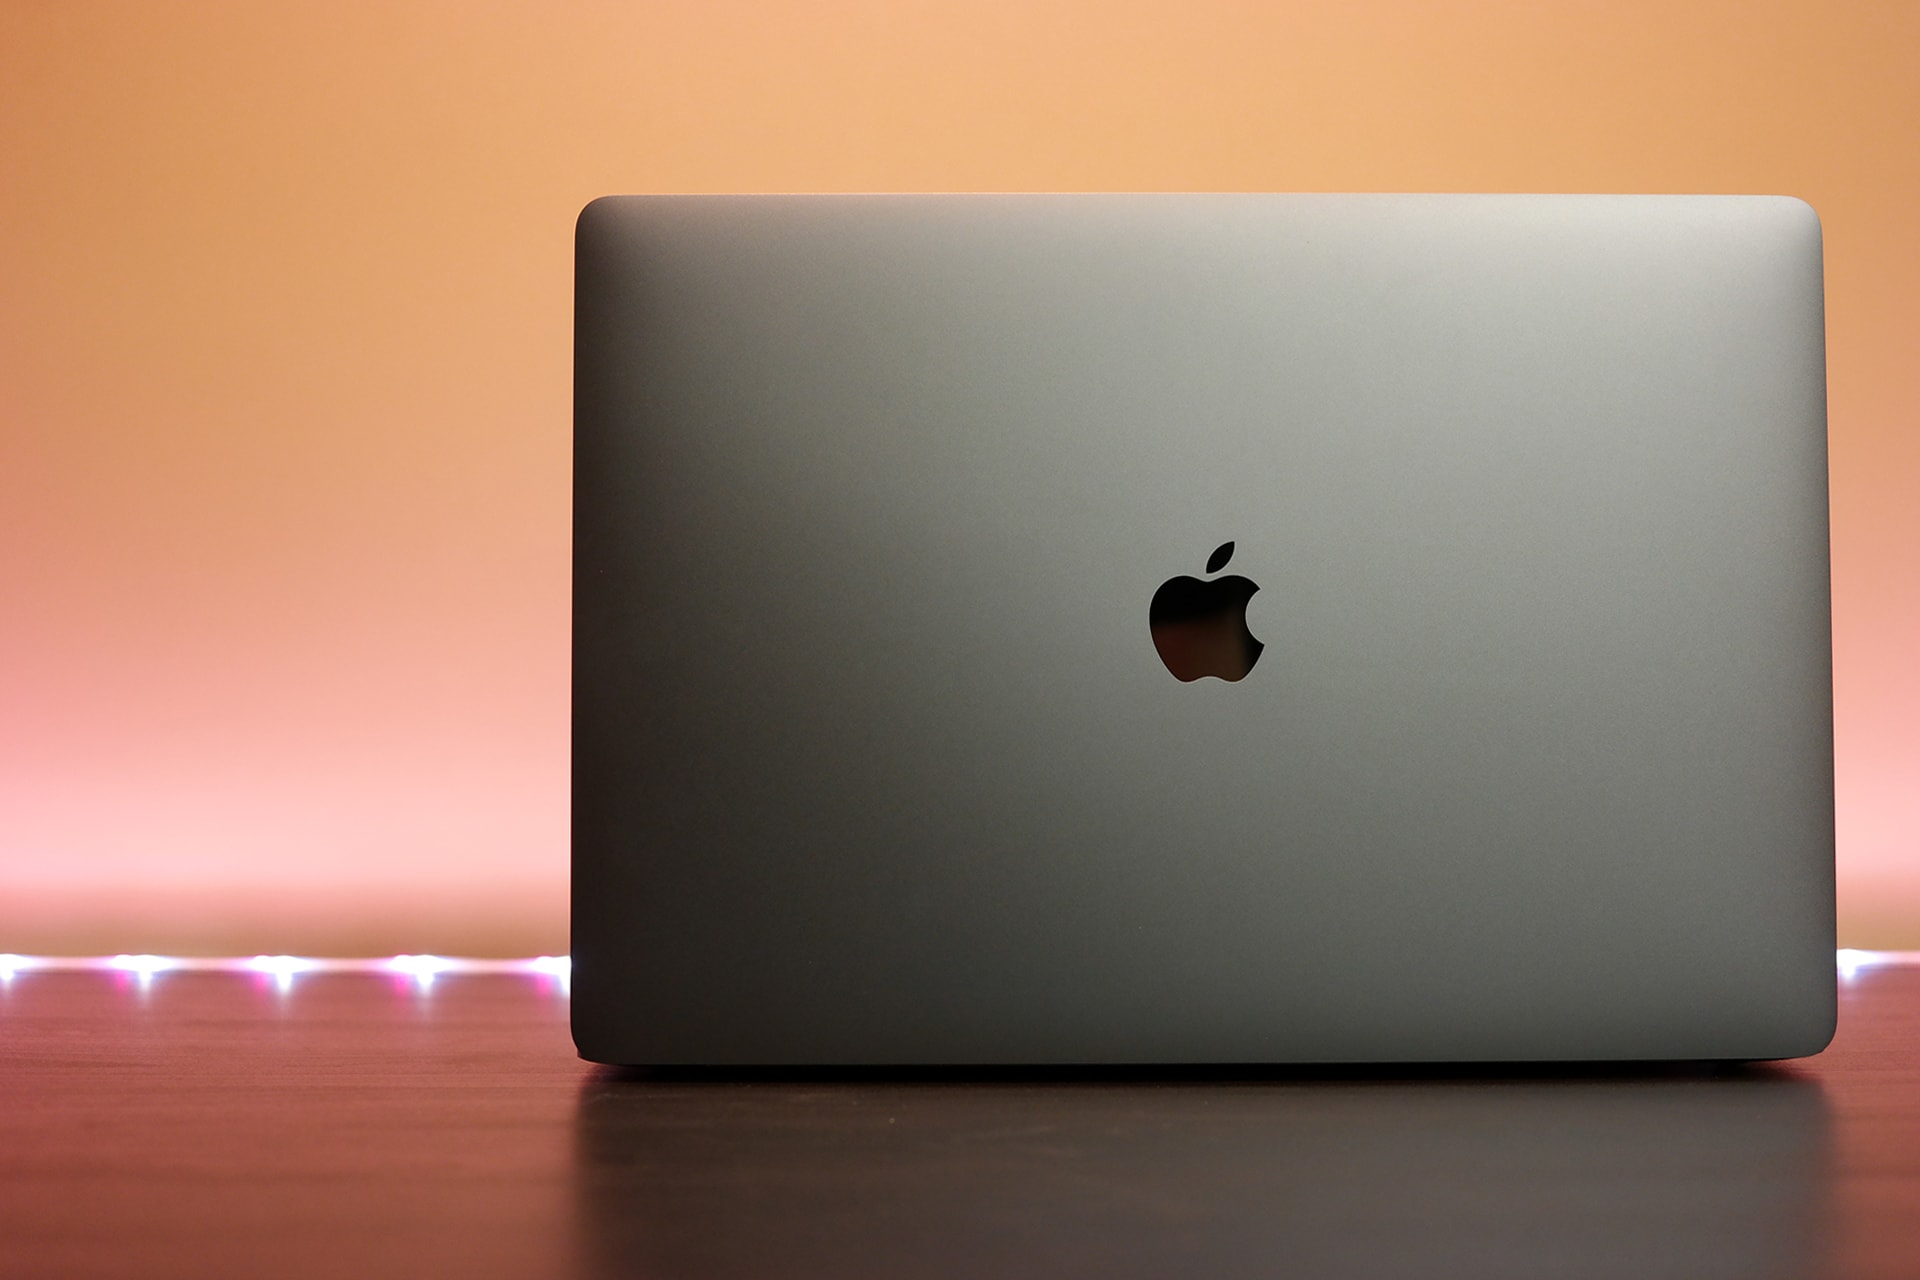 15-inch MacBook Pro with Touch Bar in Space Gray (2016 model)